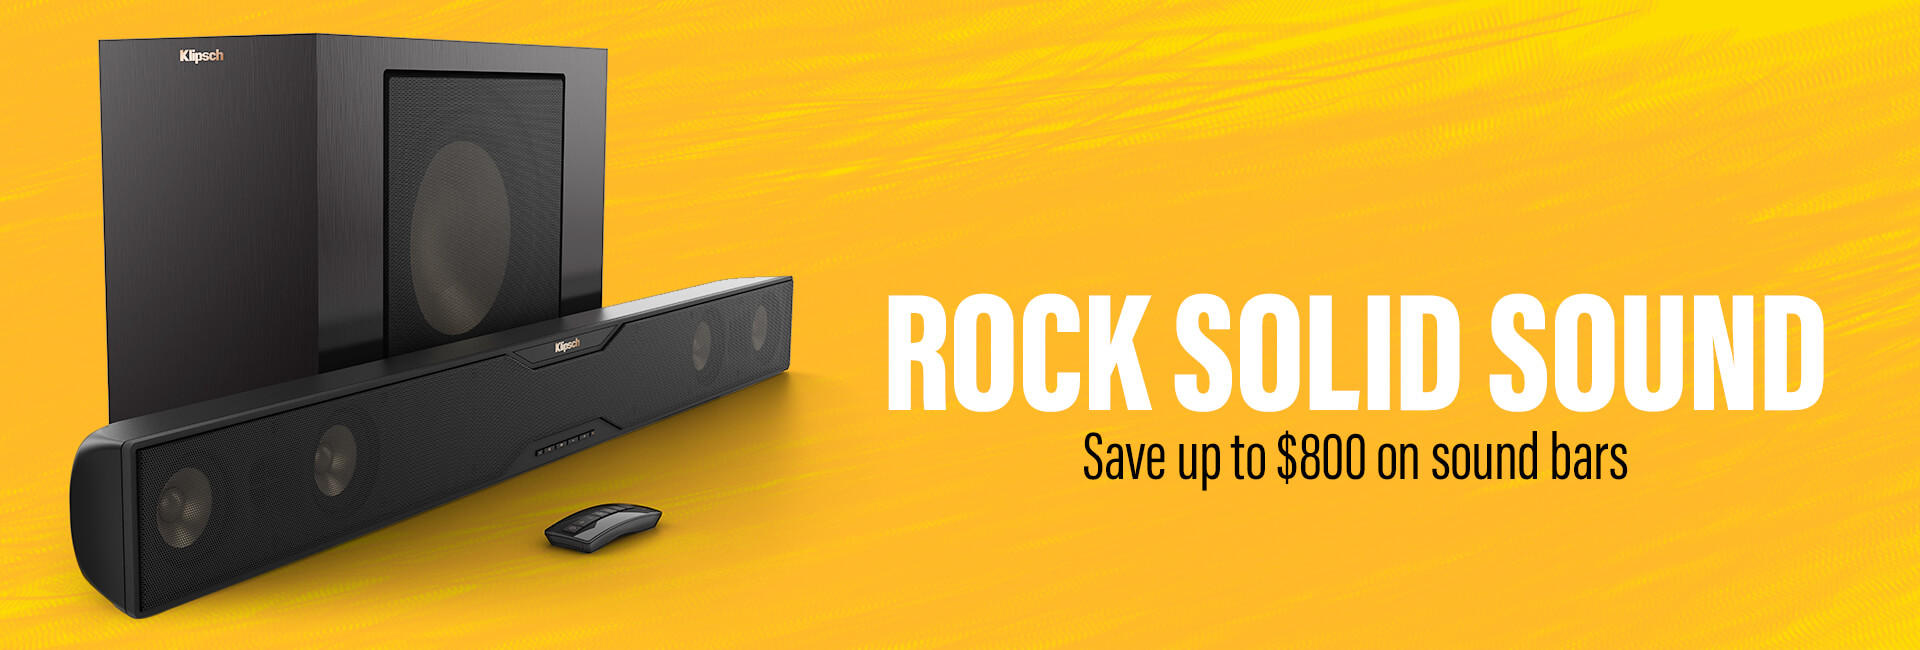 Save up to $800 on sound bars